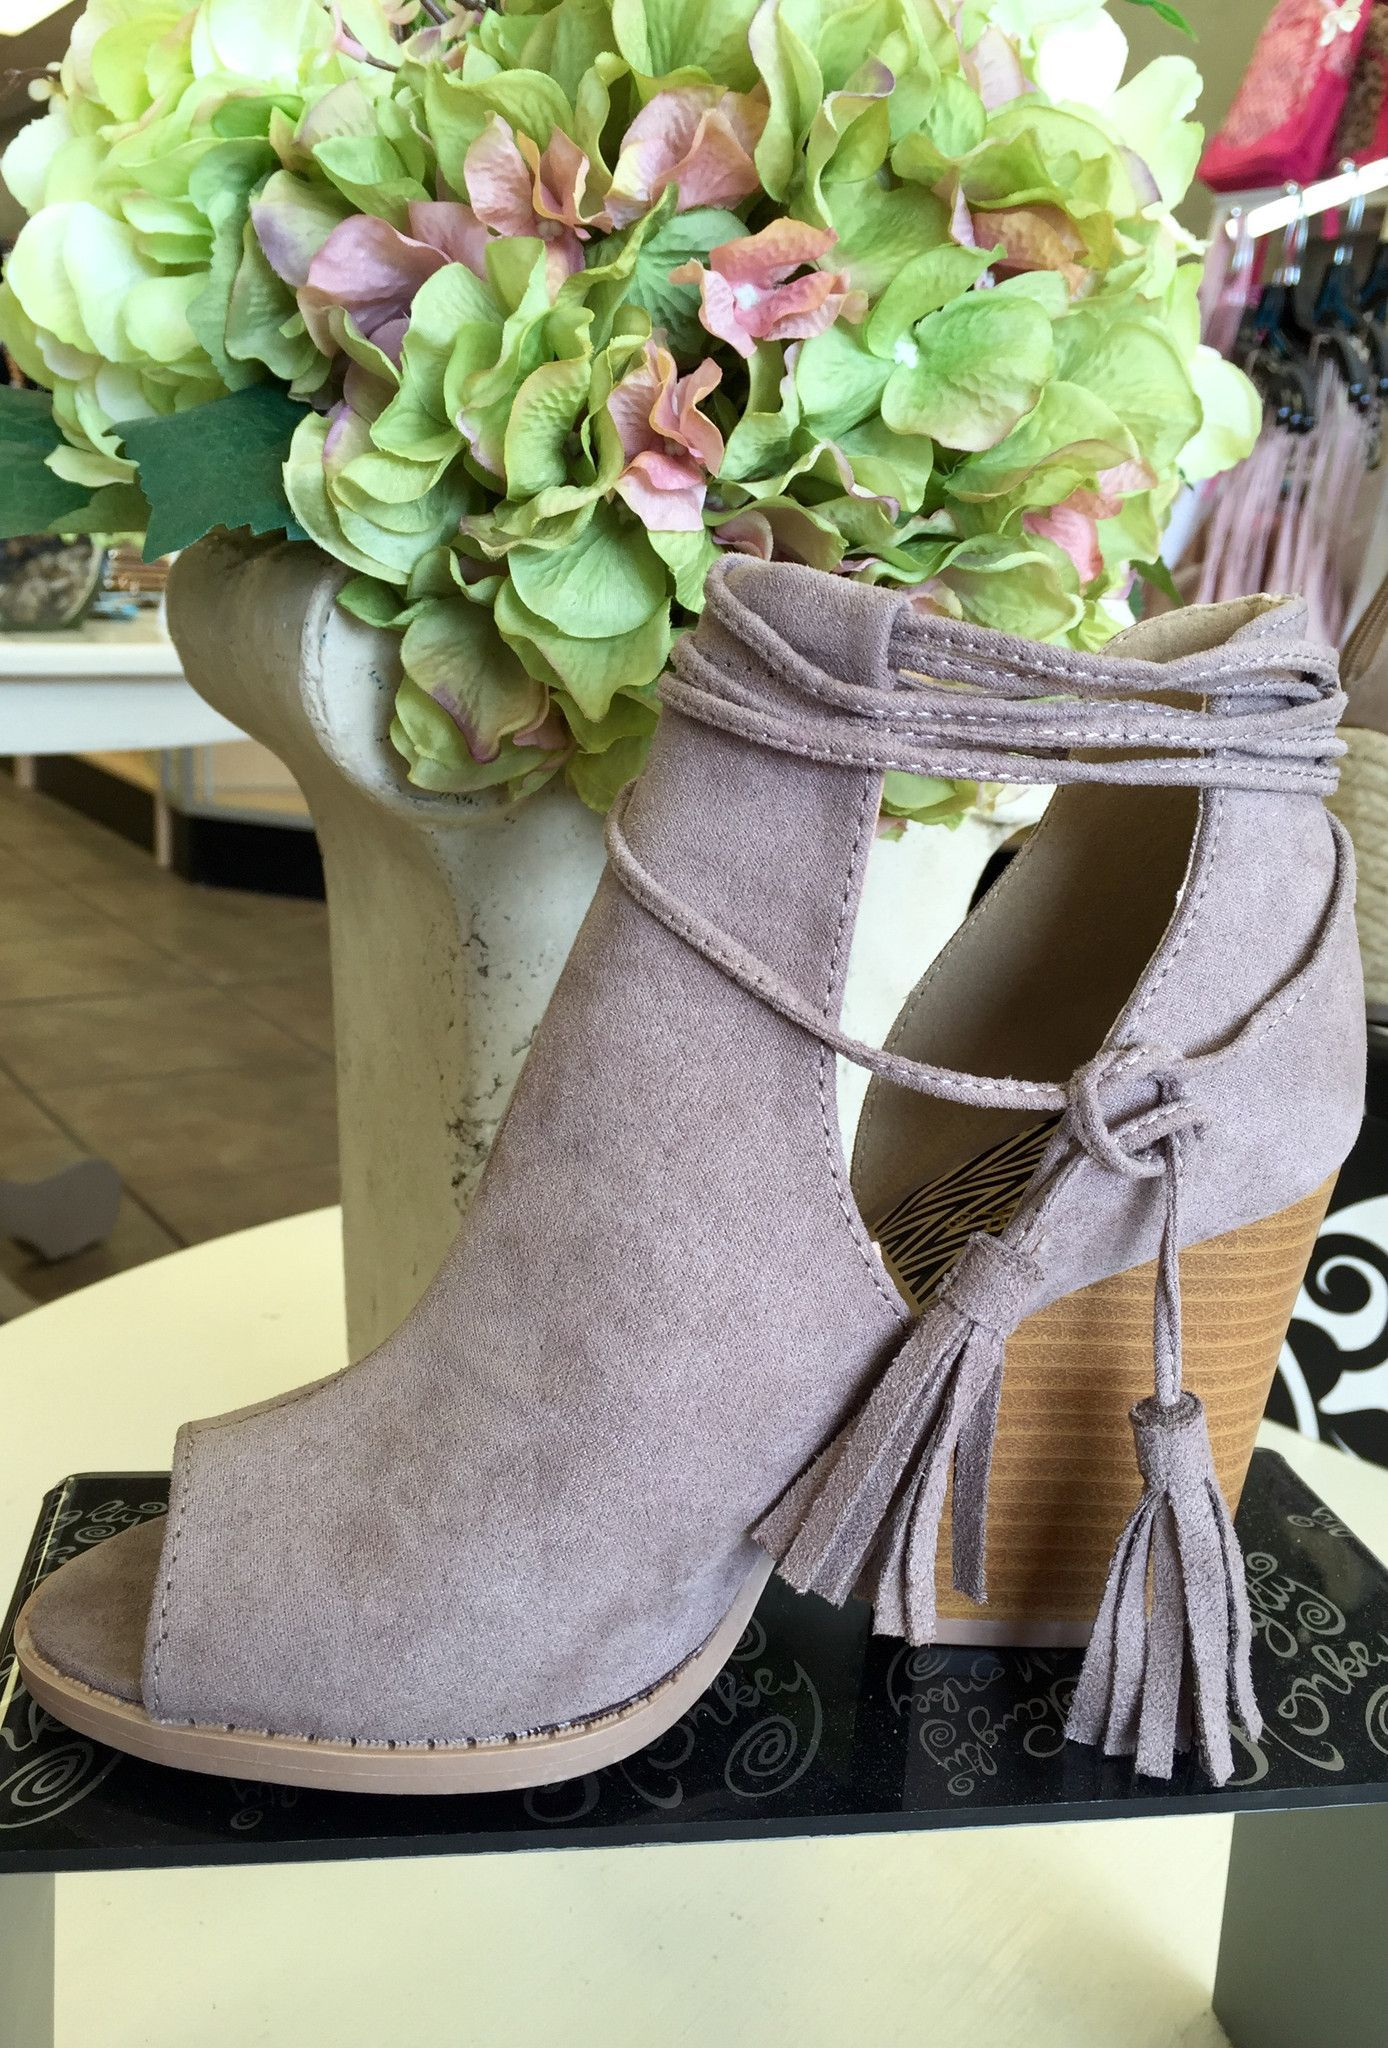 These cute heels are perfect for any season. With ties tassels and ties With   9a56ef